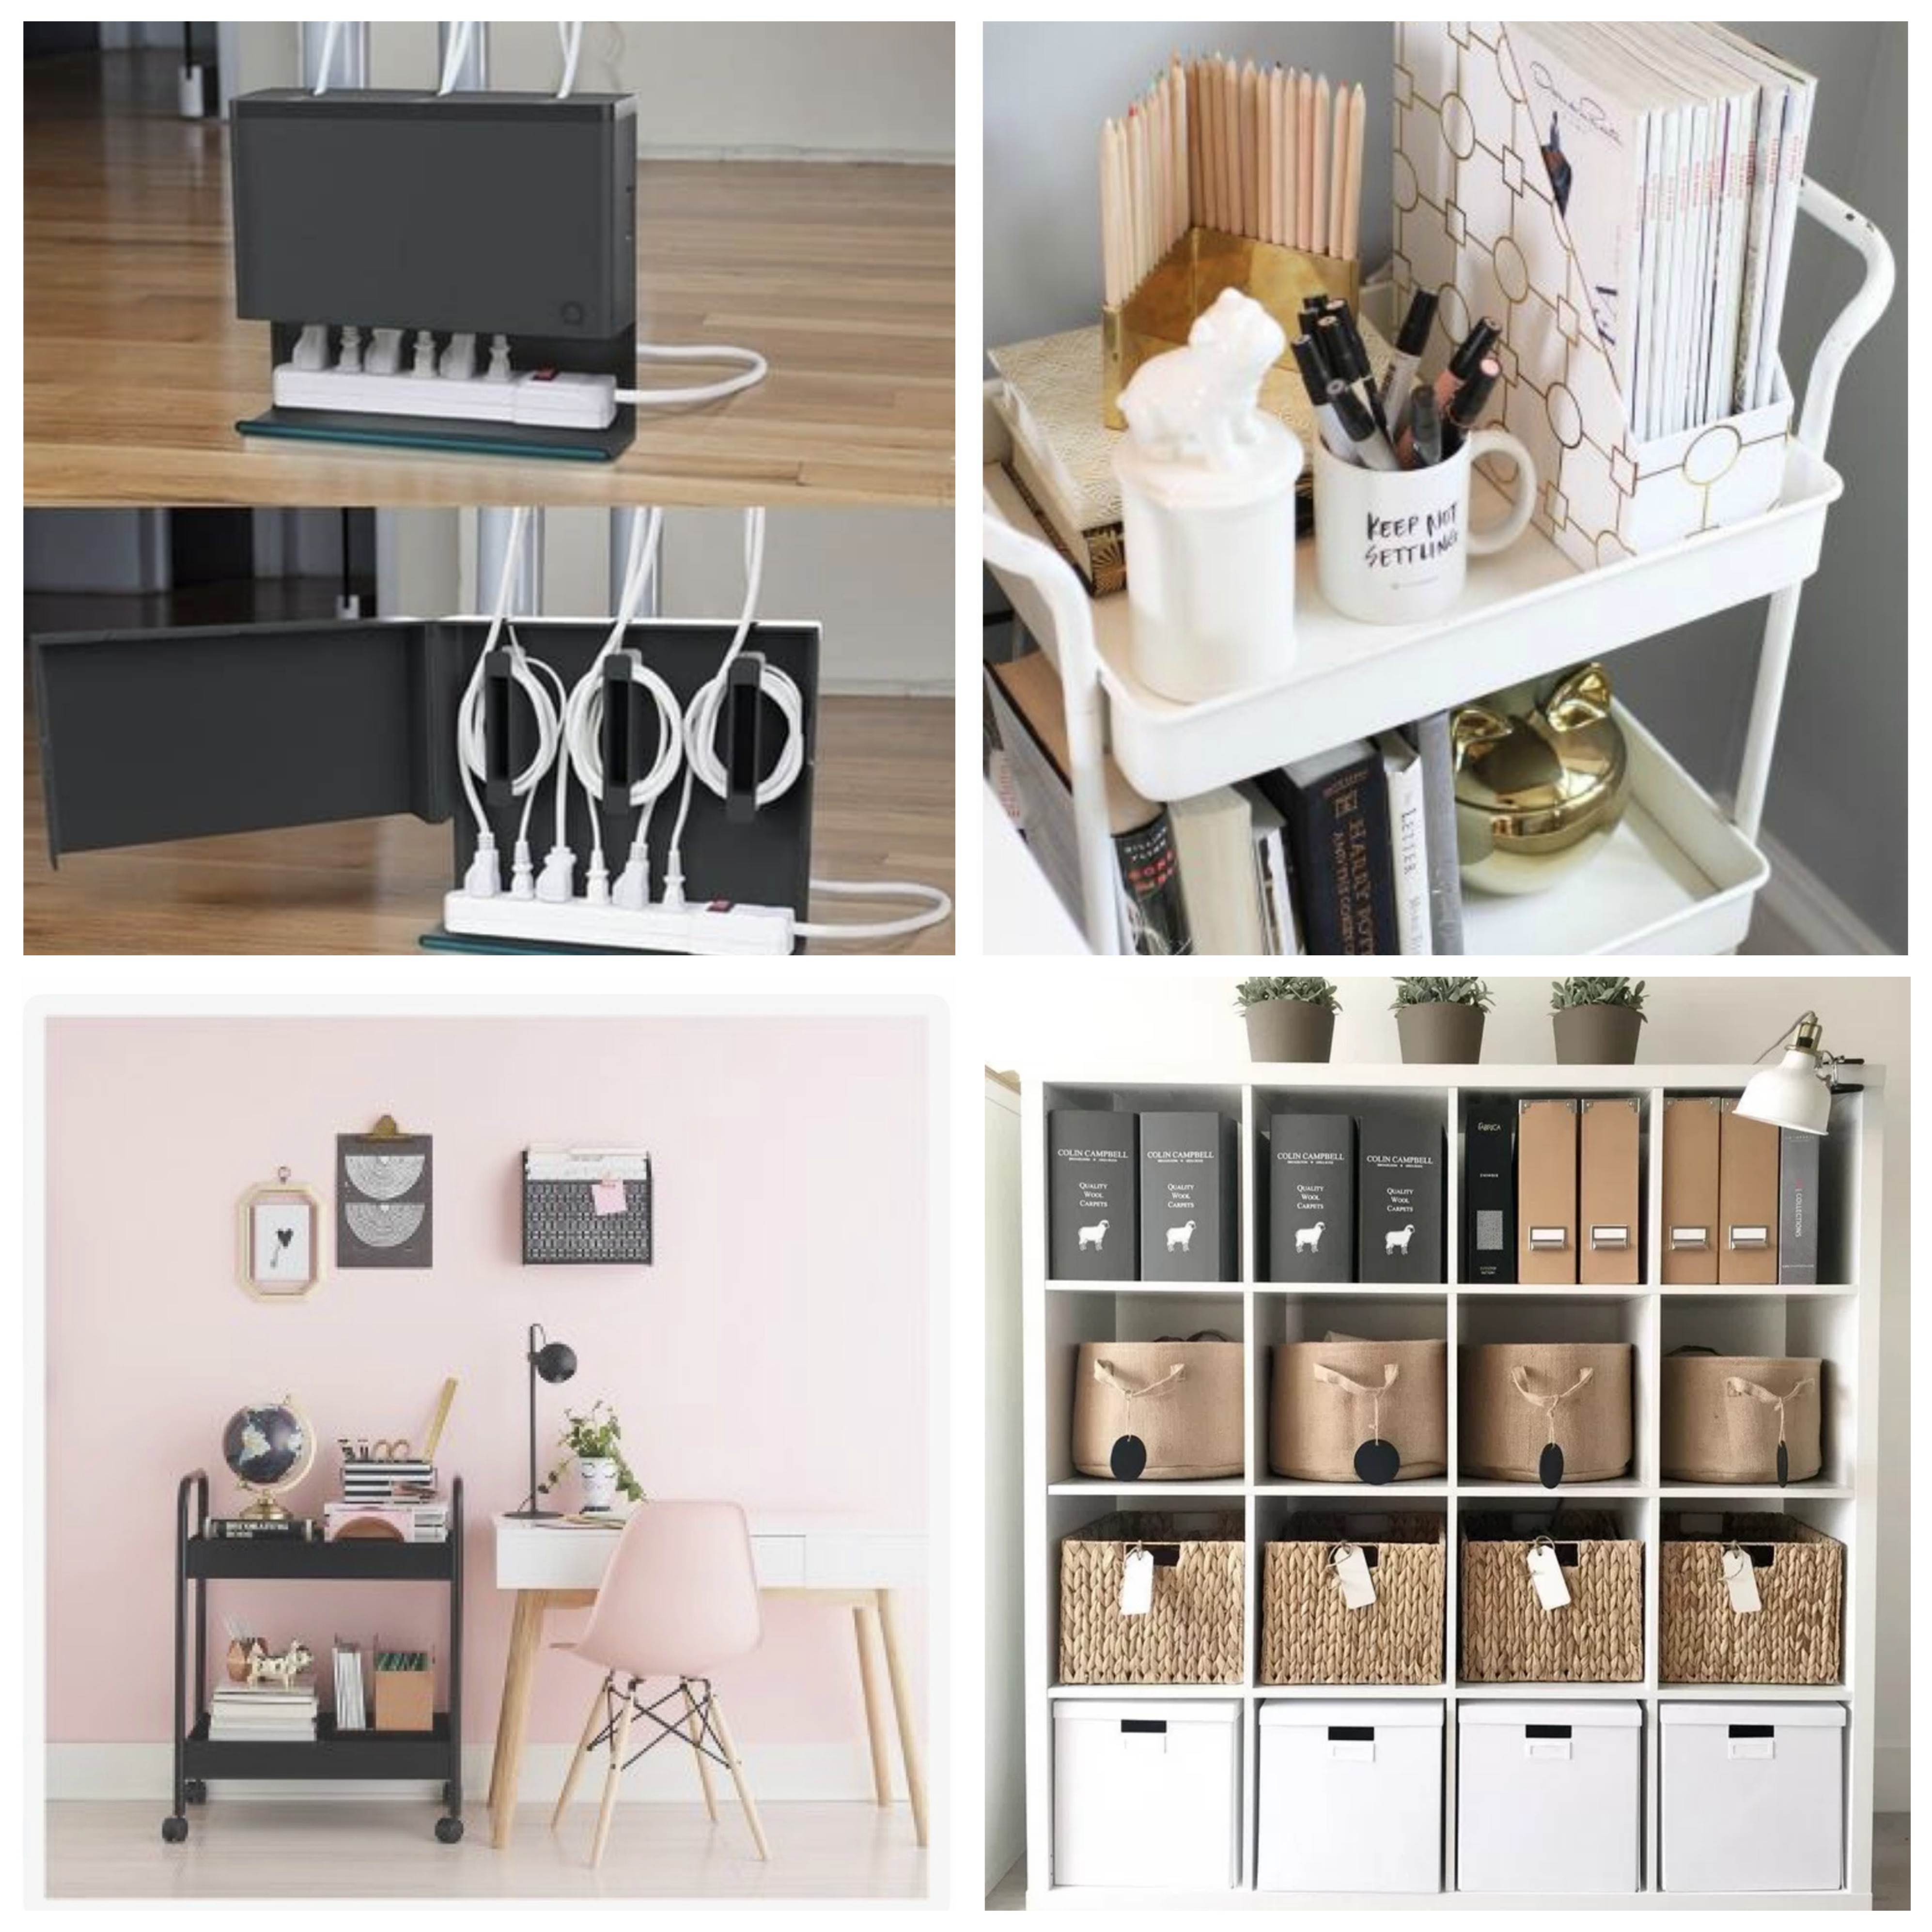 Simple & Genius Storage Ideas